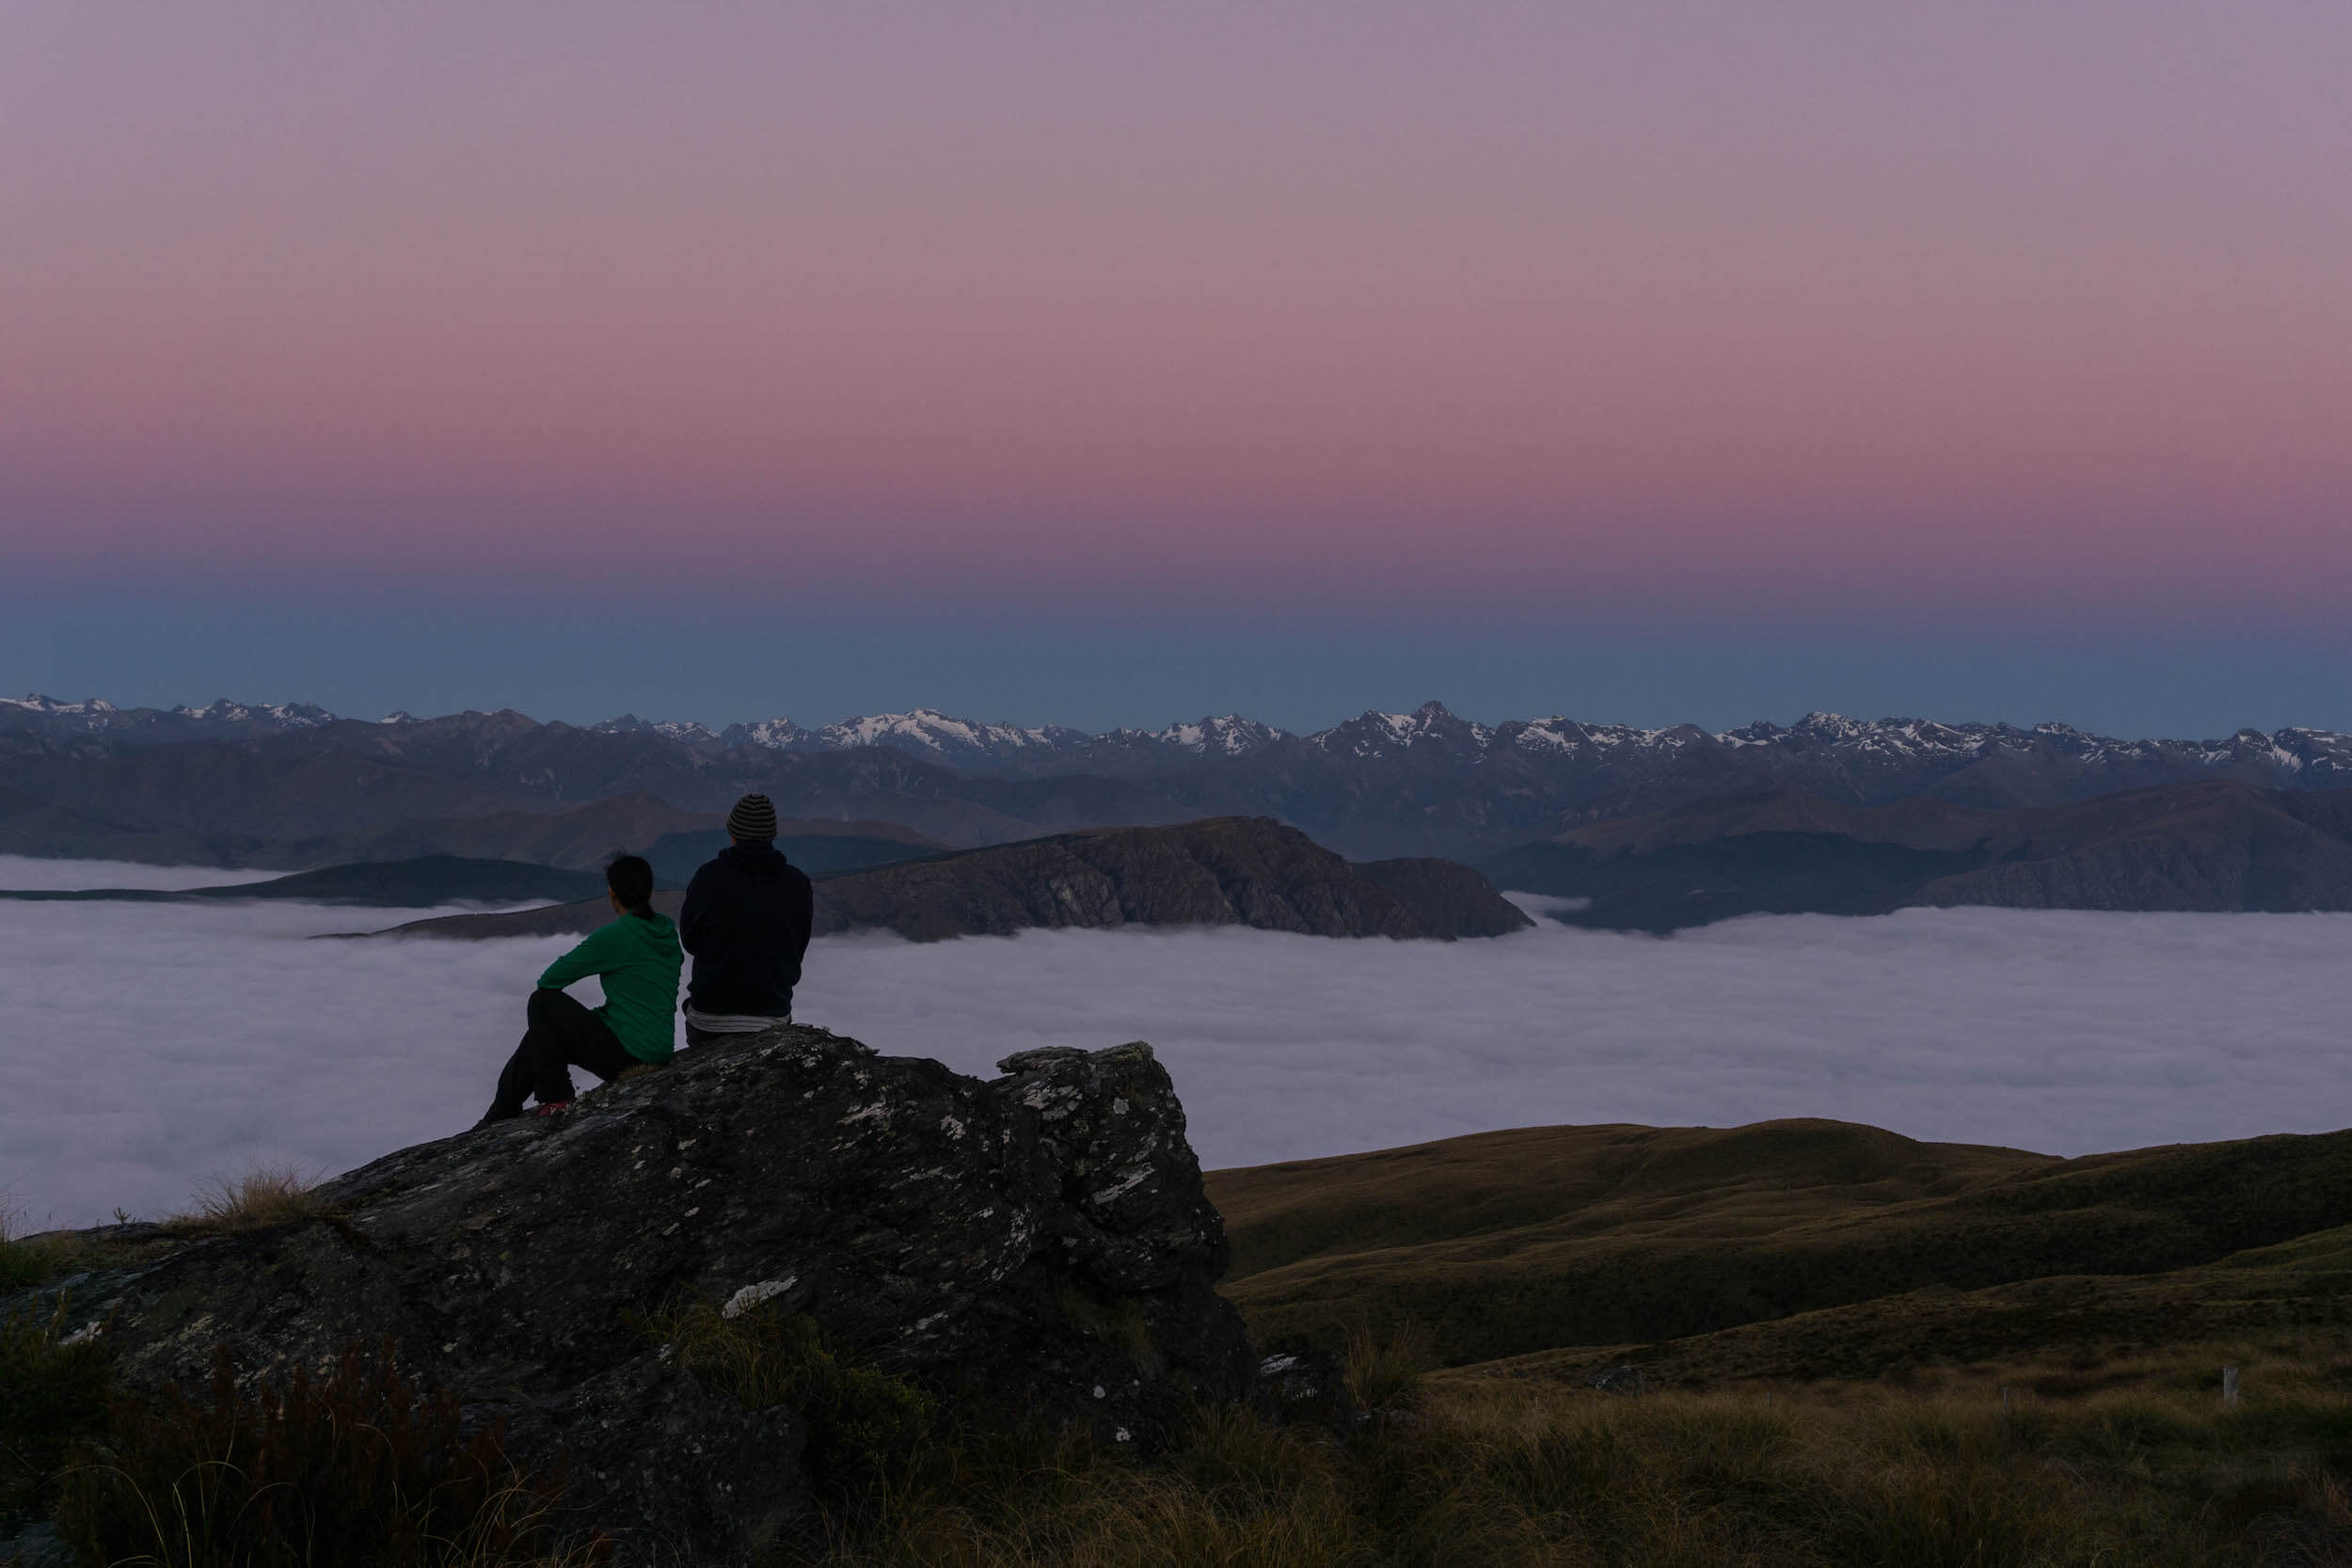 STAY OVERNIGHT TO WAKE UP TO AN AMAZING SUNRISE. WE WERE ALSO LUCKY ENOUGH TO WITNESS A CLOUD INVERSION